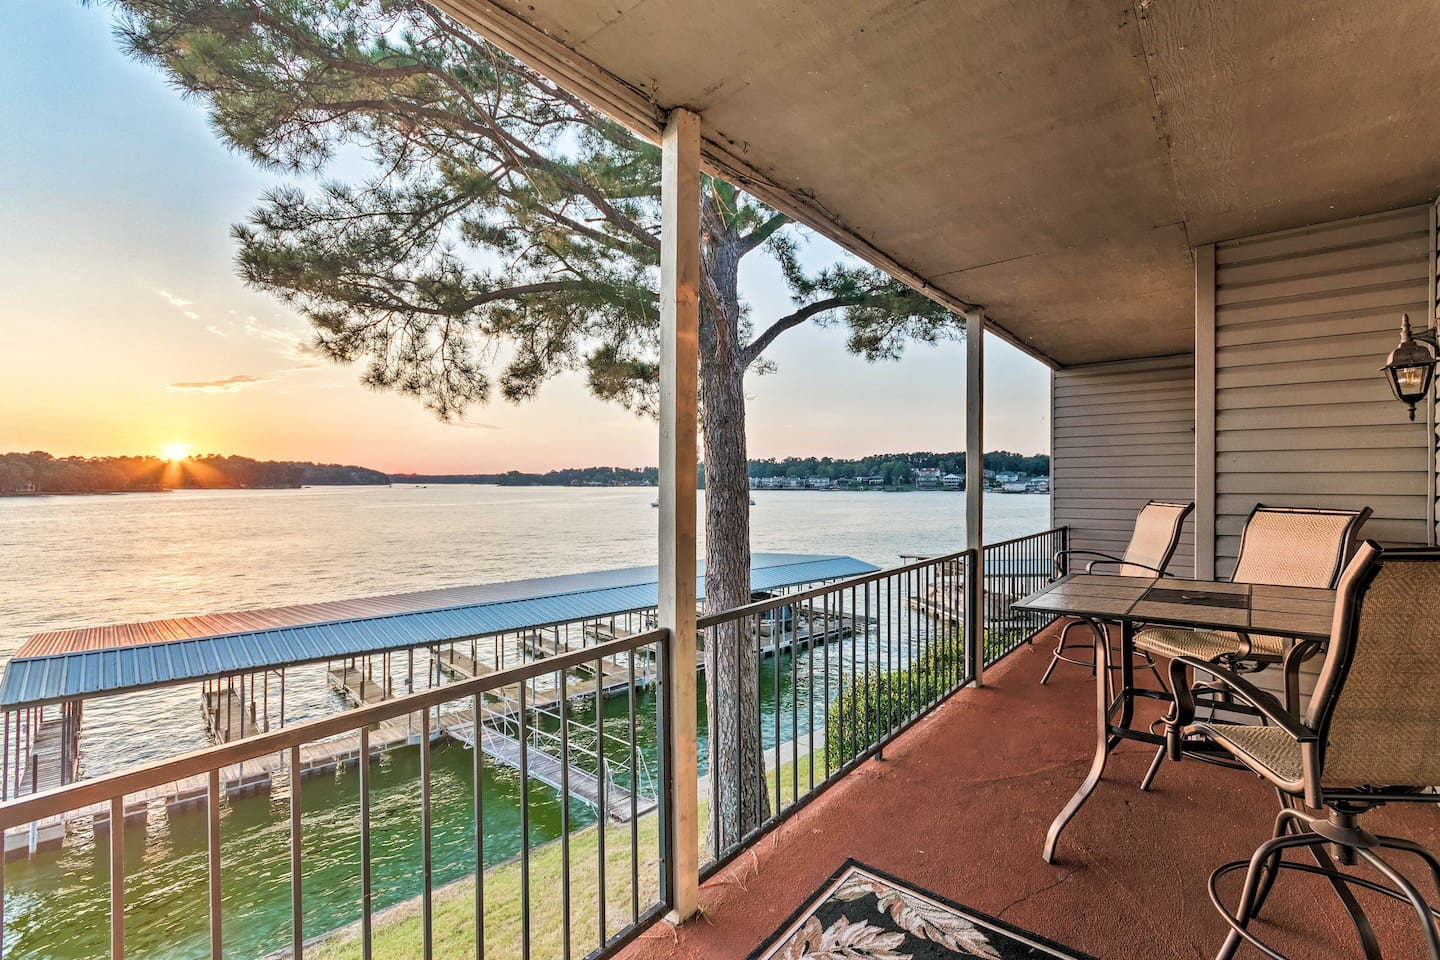 Enjoy the serene lakeside surroundings on your private patio!